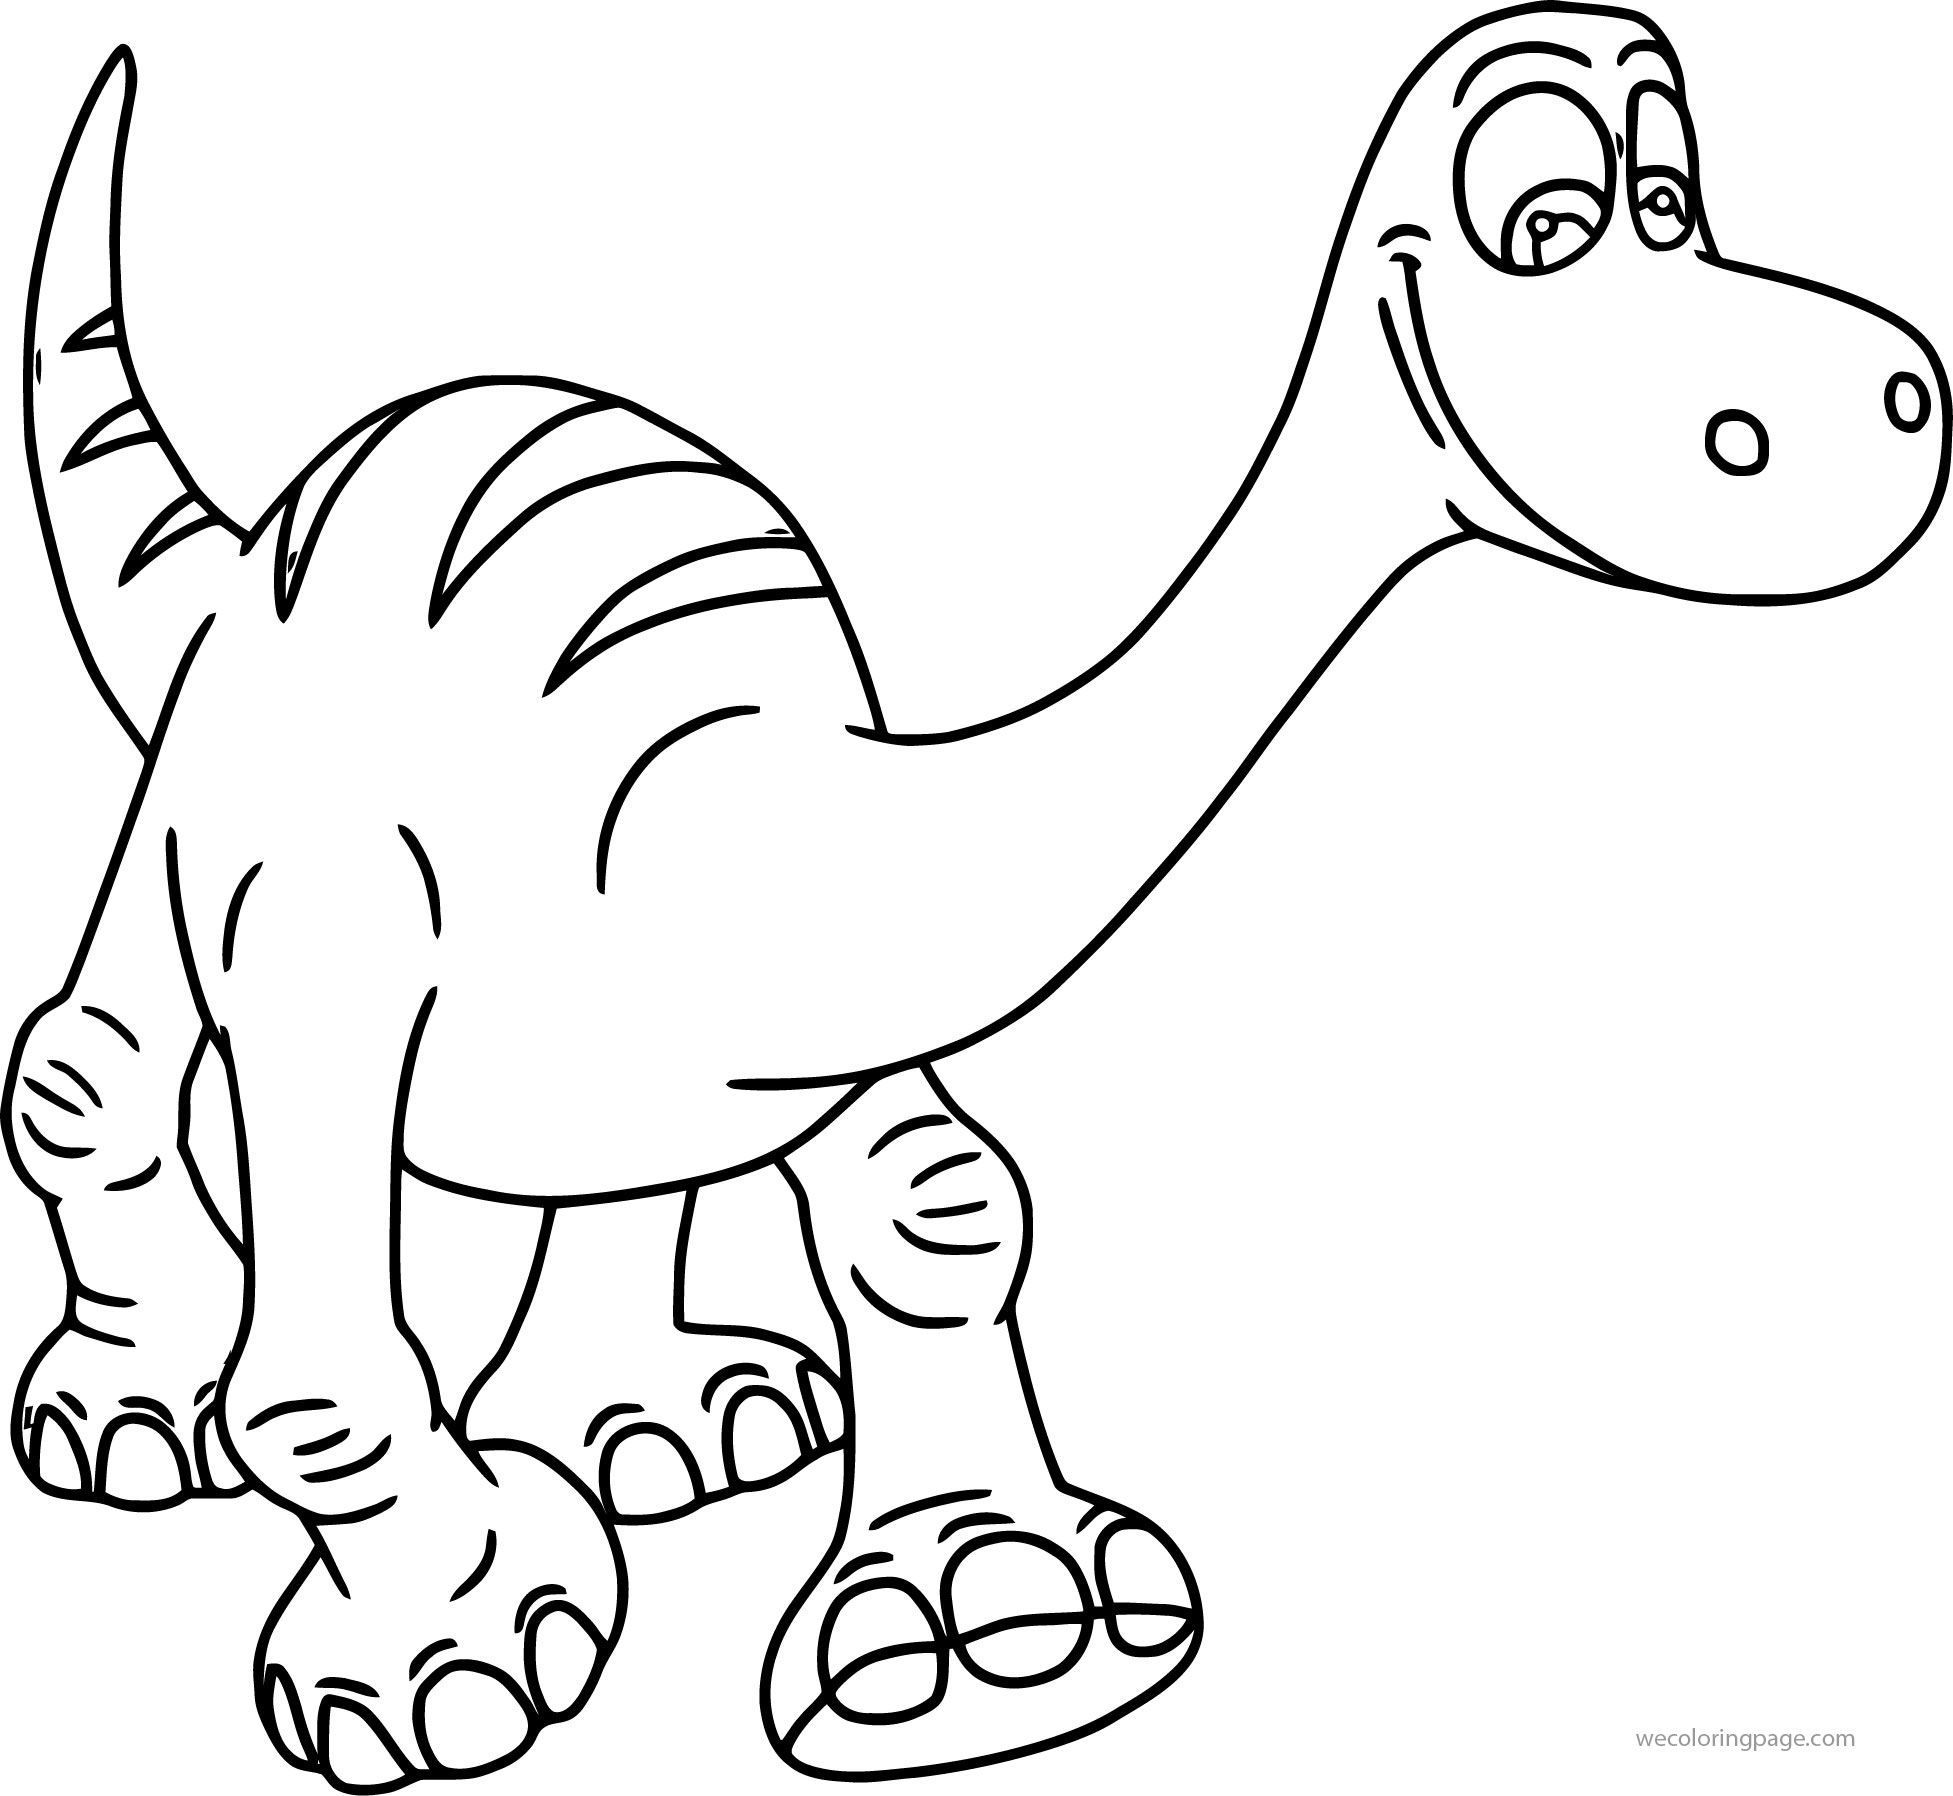 Printable coloring pages dinosaurs - The Good Dinosaur Disney Coloring Pages